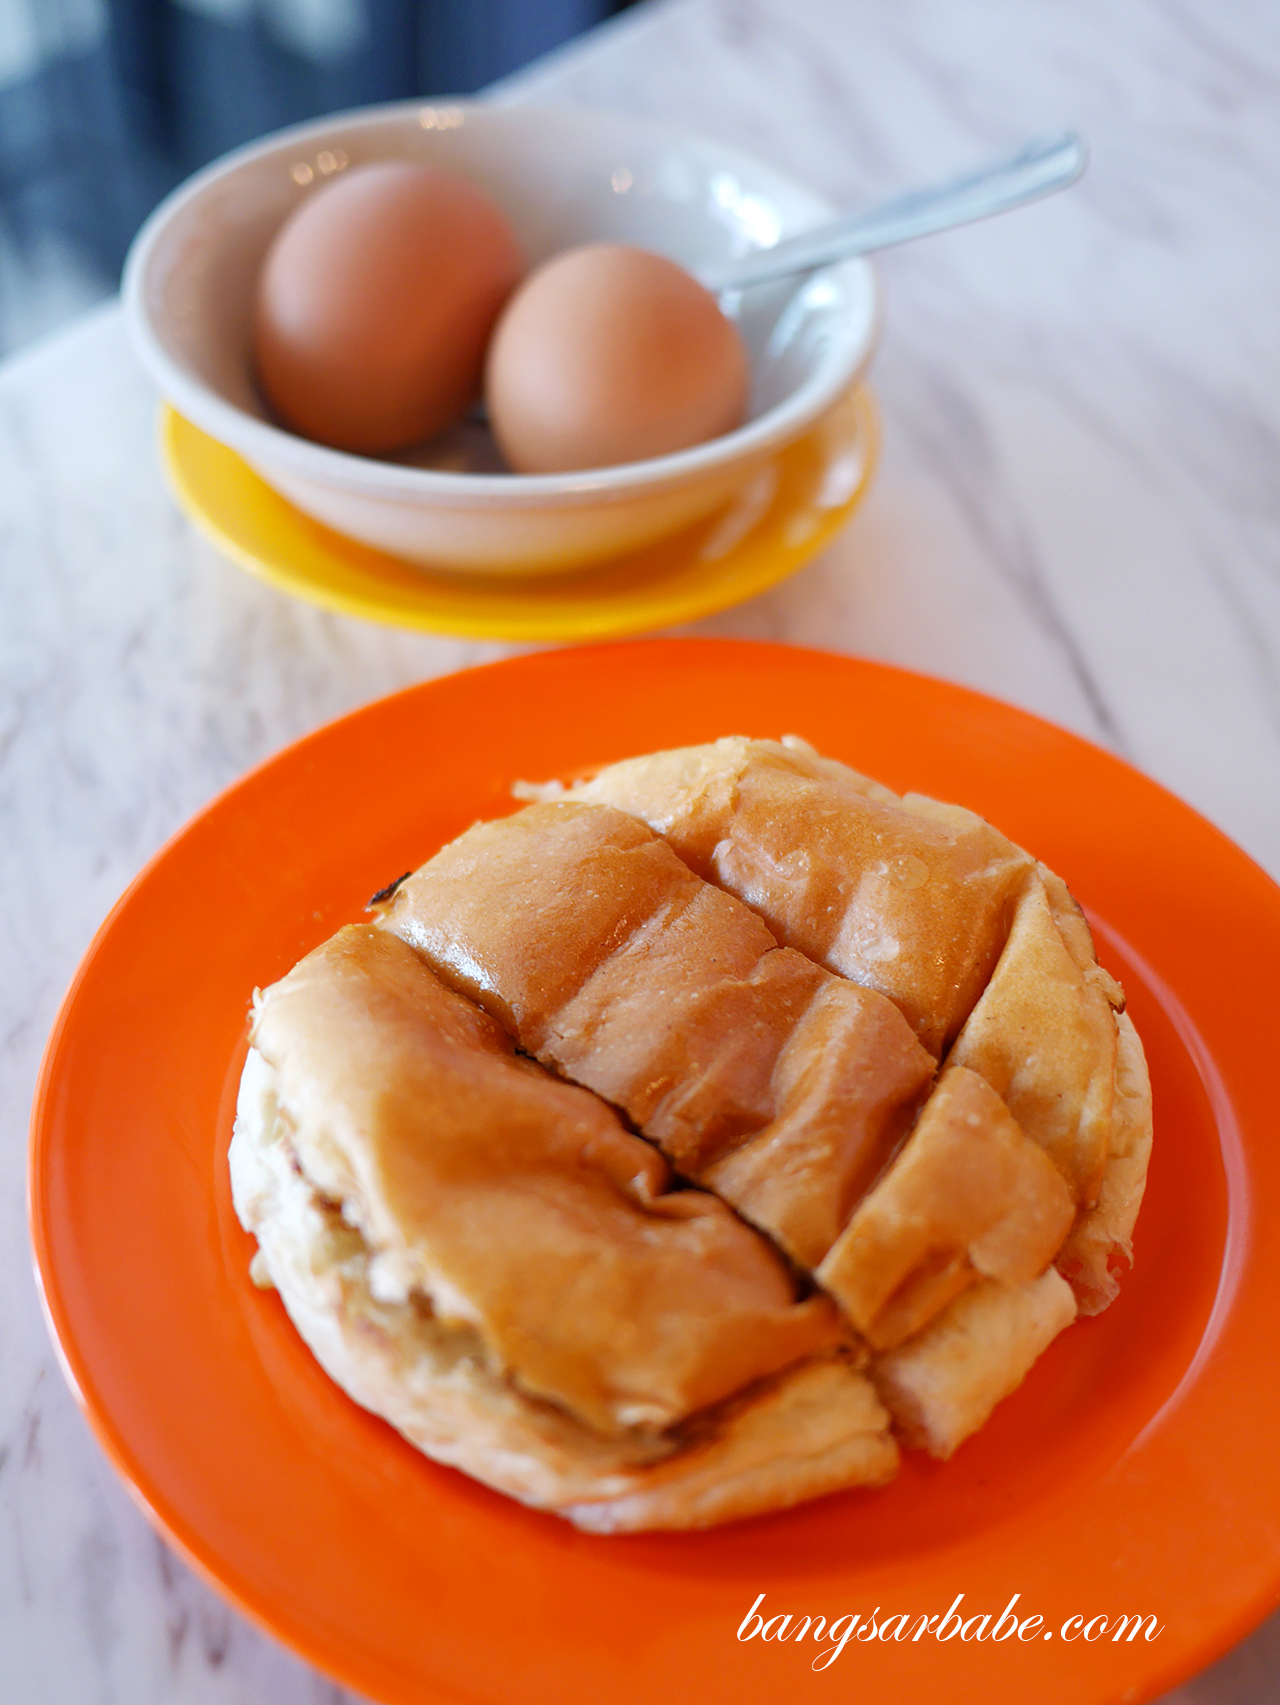 Bun Bakar with Soft Boiled Eggs